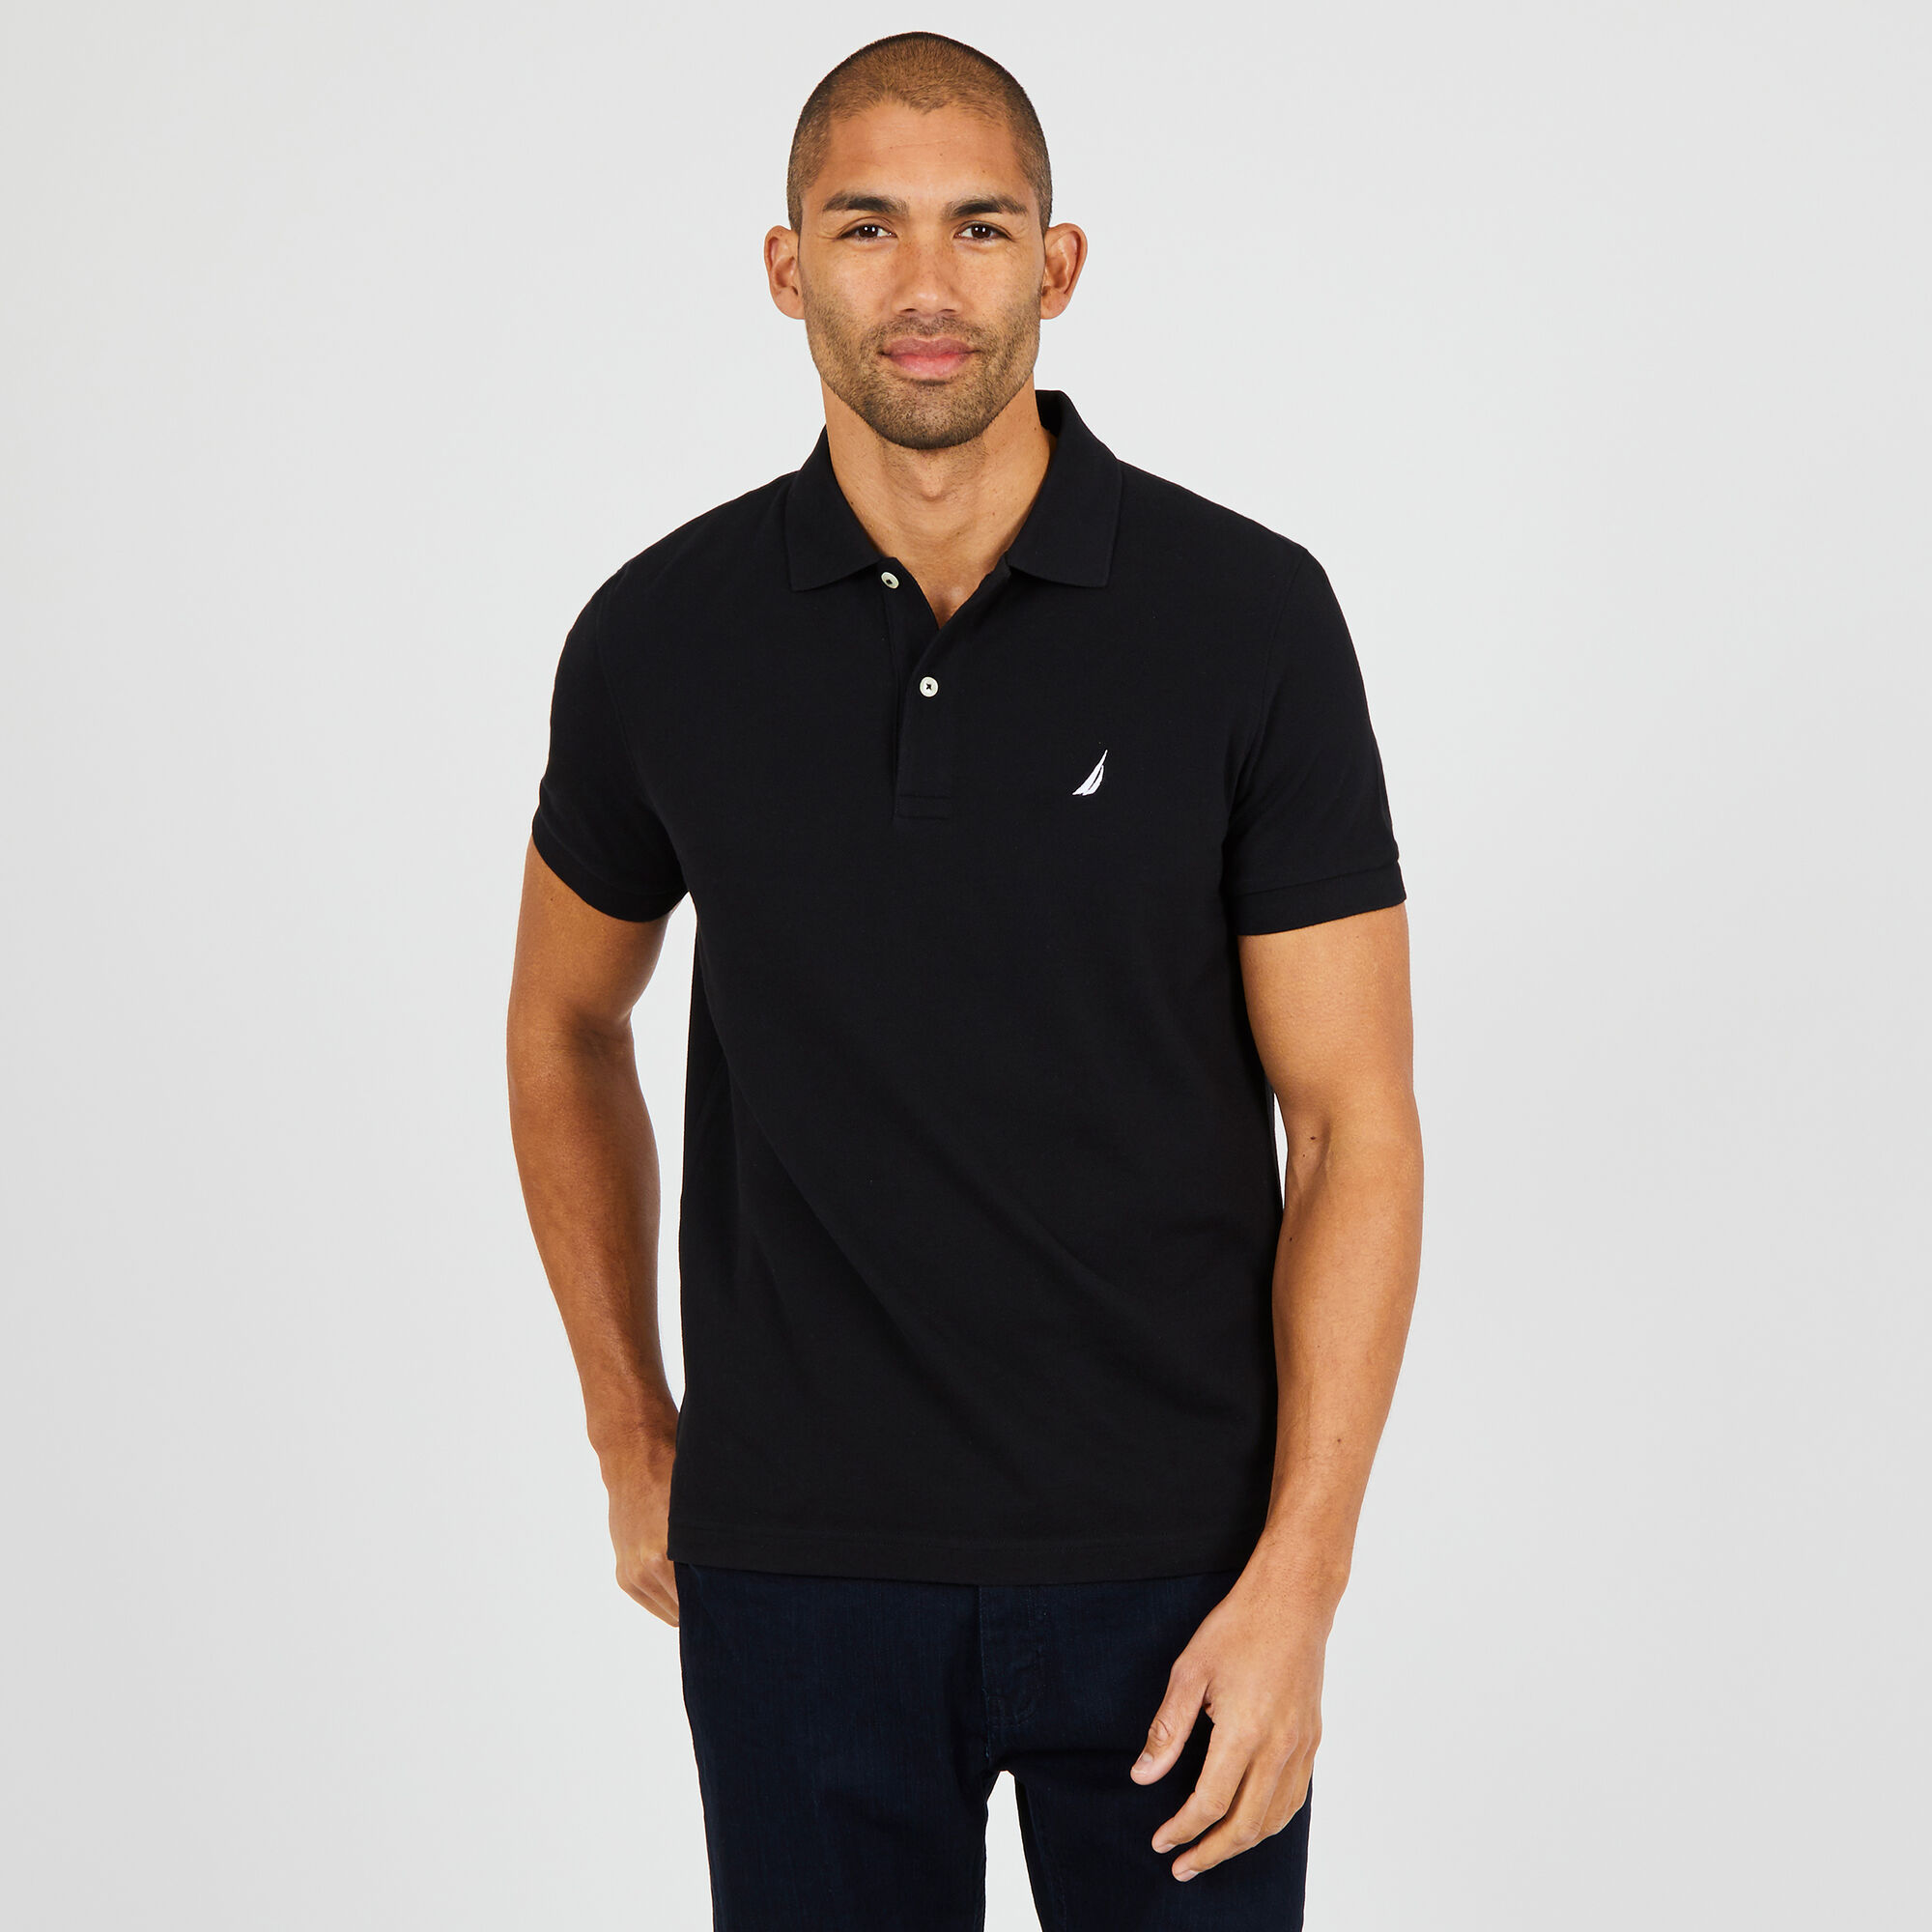 77d744061c4 Xxl Polo T Shirts Online India – EDGE Engineering and Consulting Limited